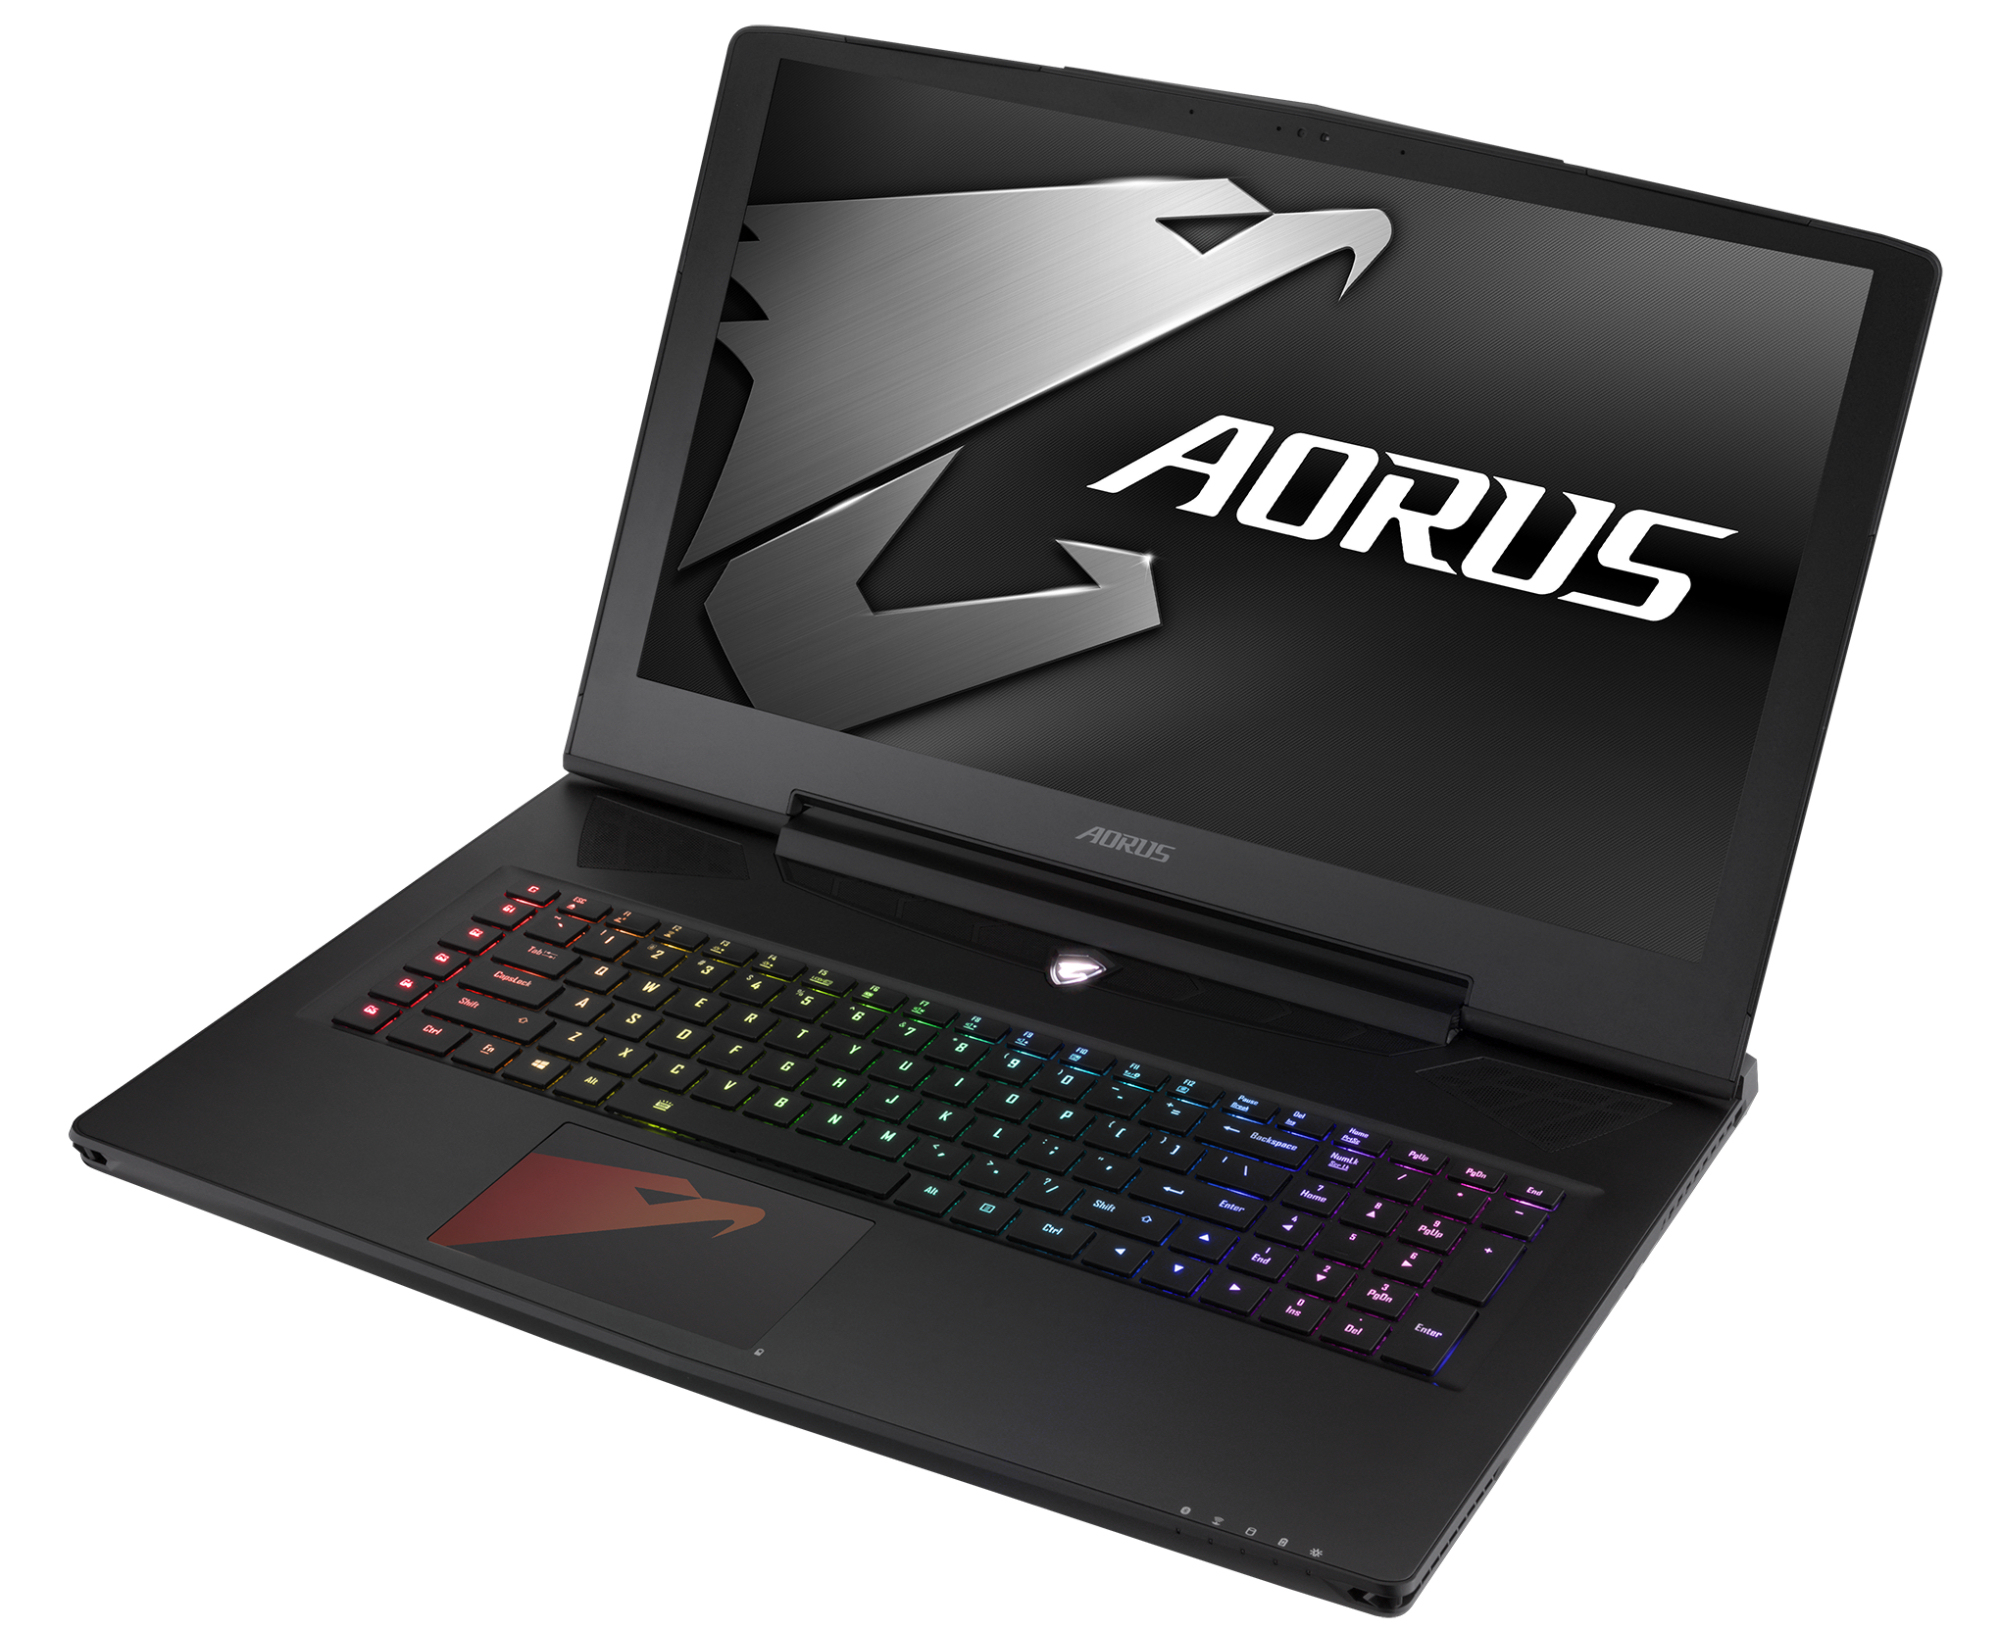 AORUS X7 Intel WLAN Treiber Windows 7